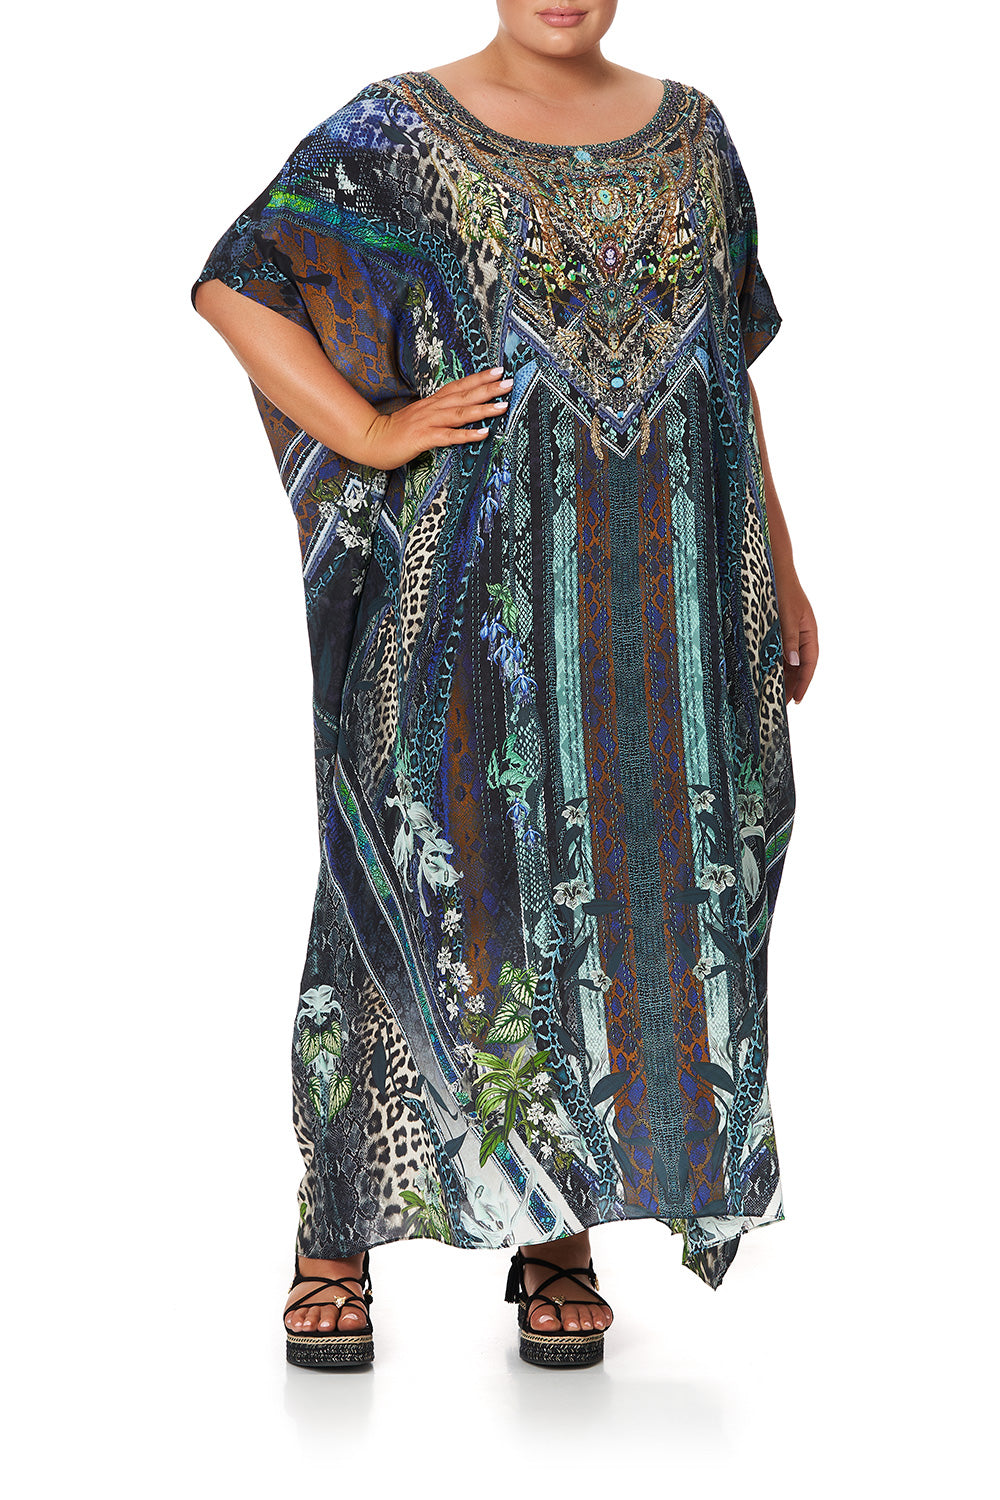 ROUND NECK KAFTAN KOMODO QUEEN